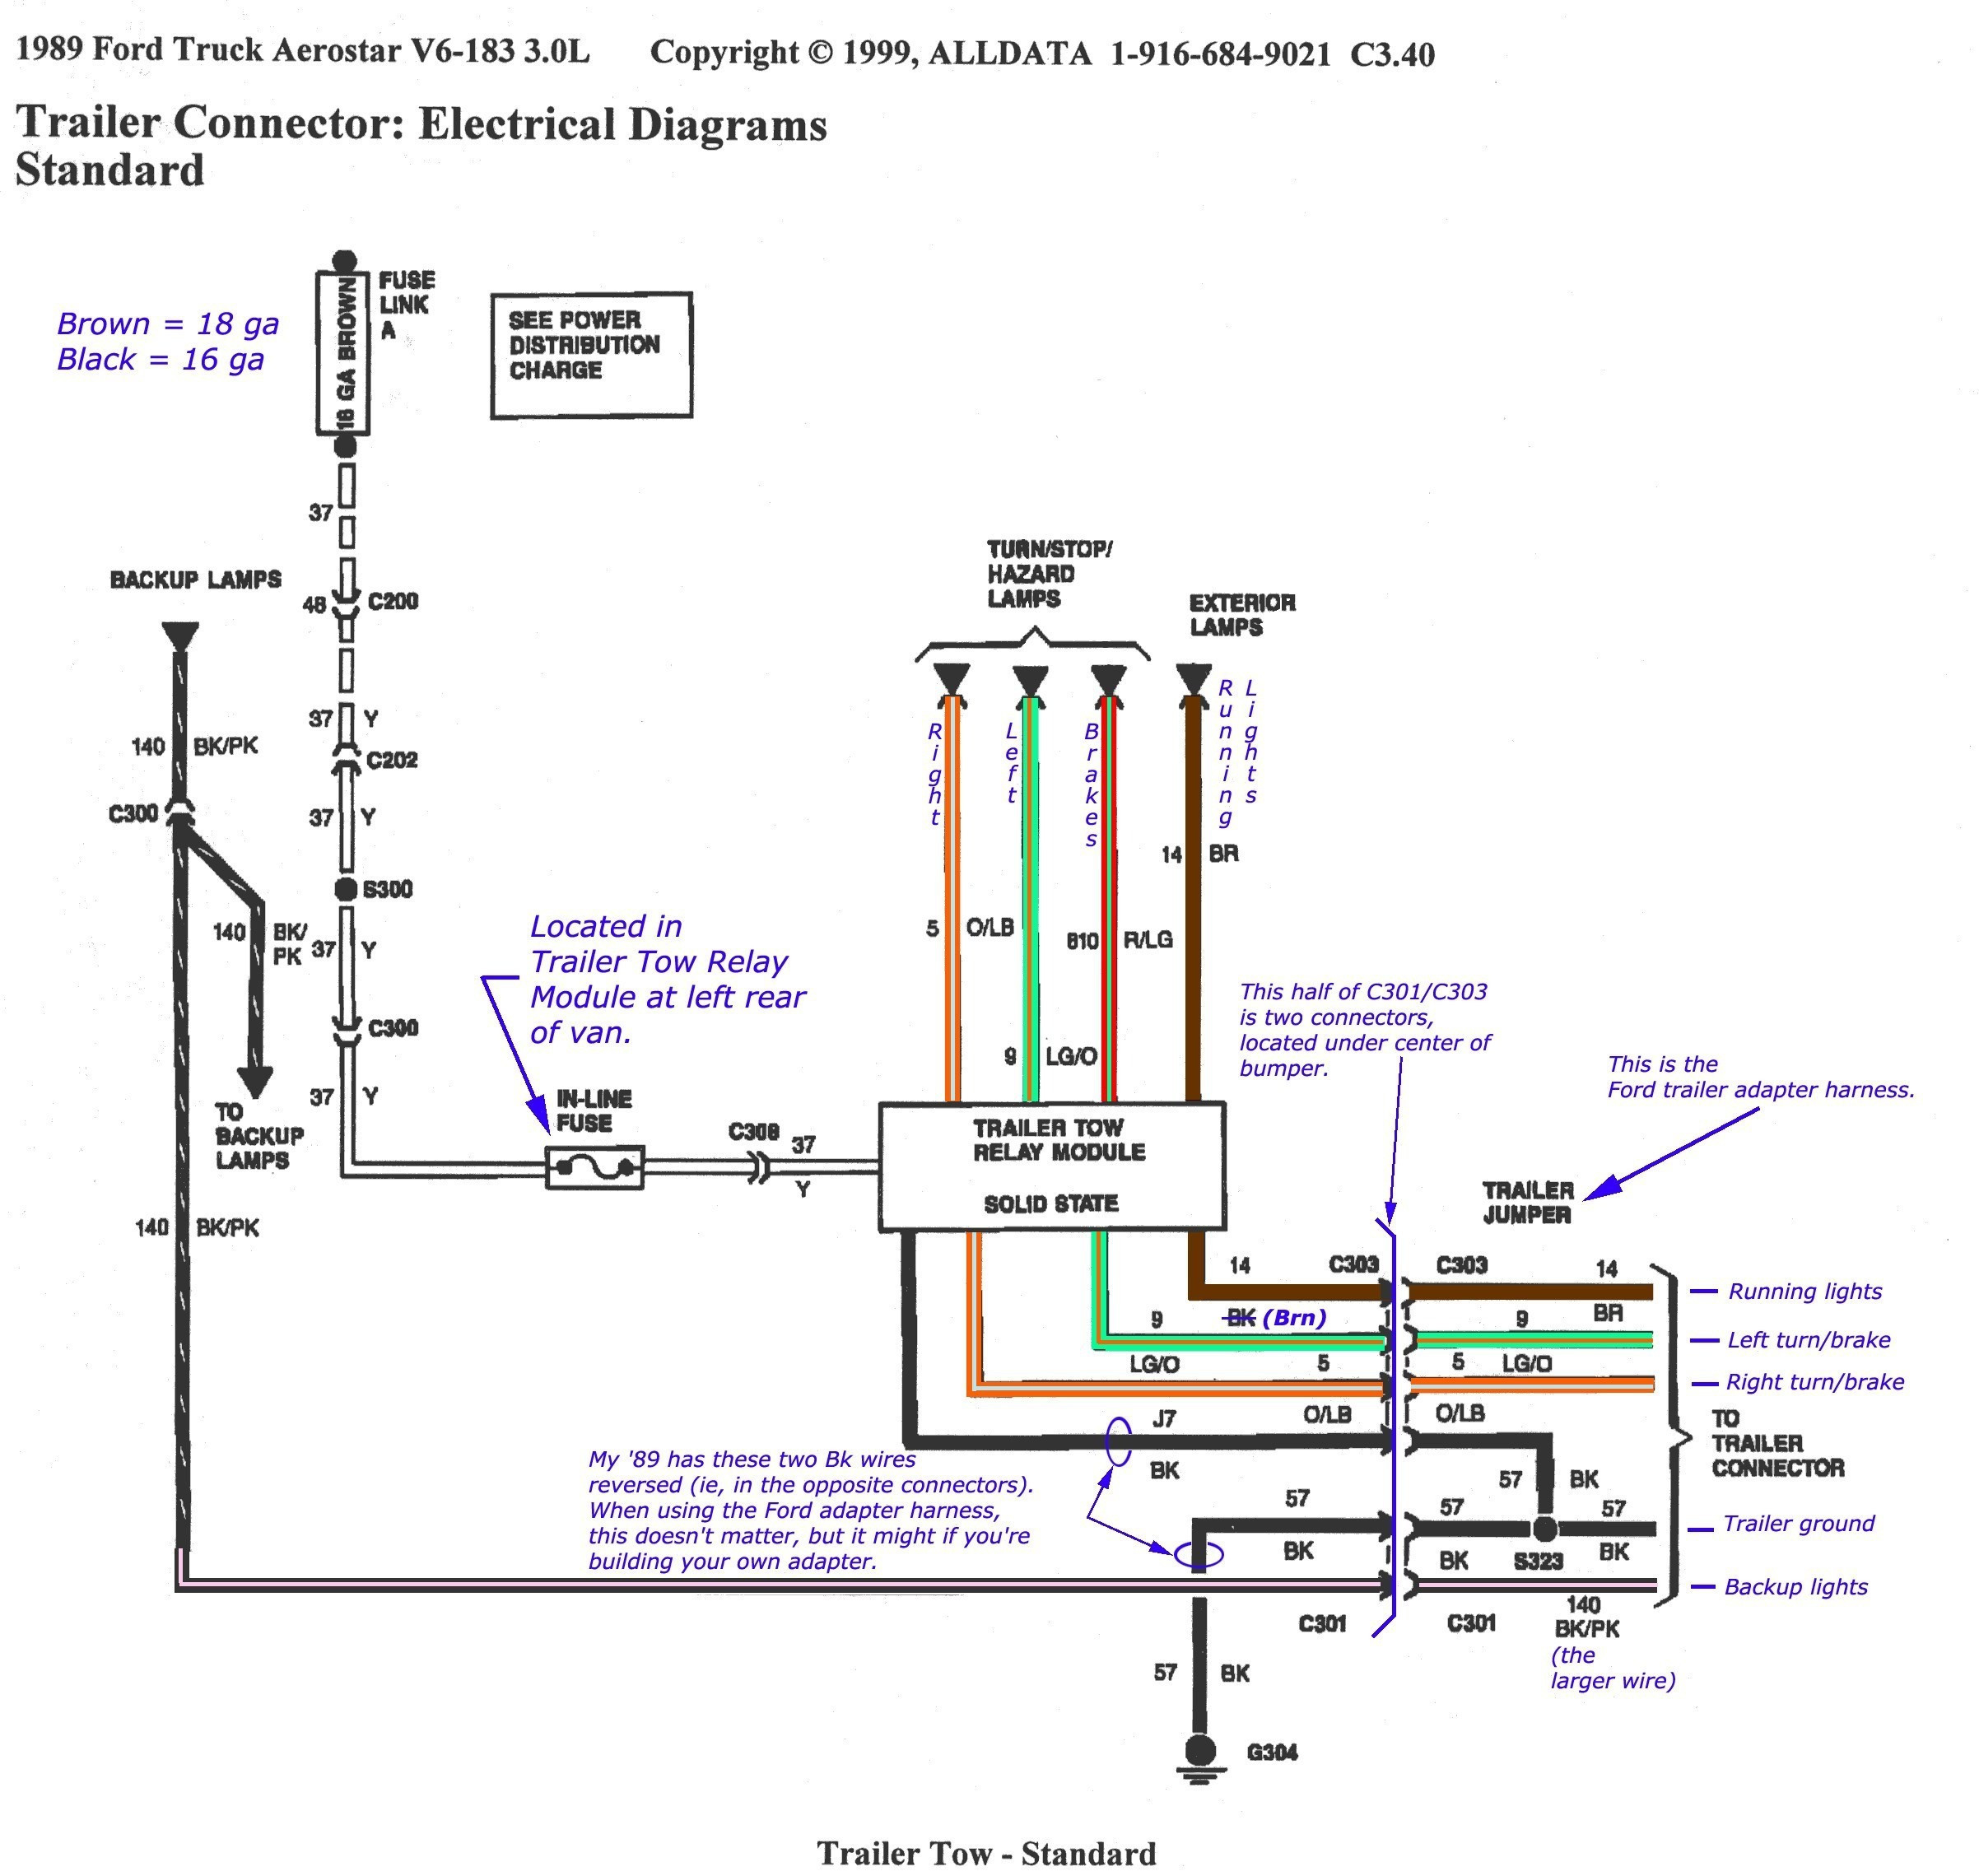 trailer junction box wiring diagram Collection-Wiring Diagrams for Utility Trailer Best Utility Trailer Wiring Diagram Best Best Wiring Diagram Od Rv 6-k